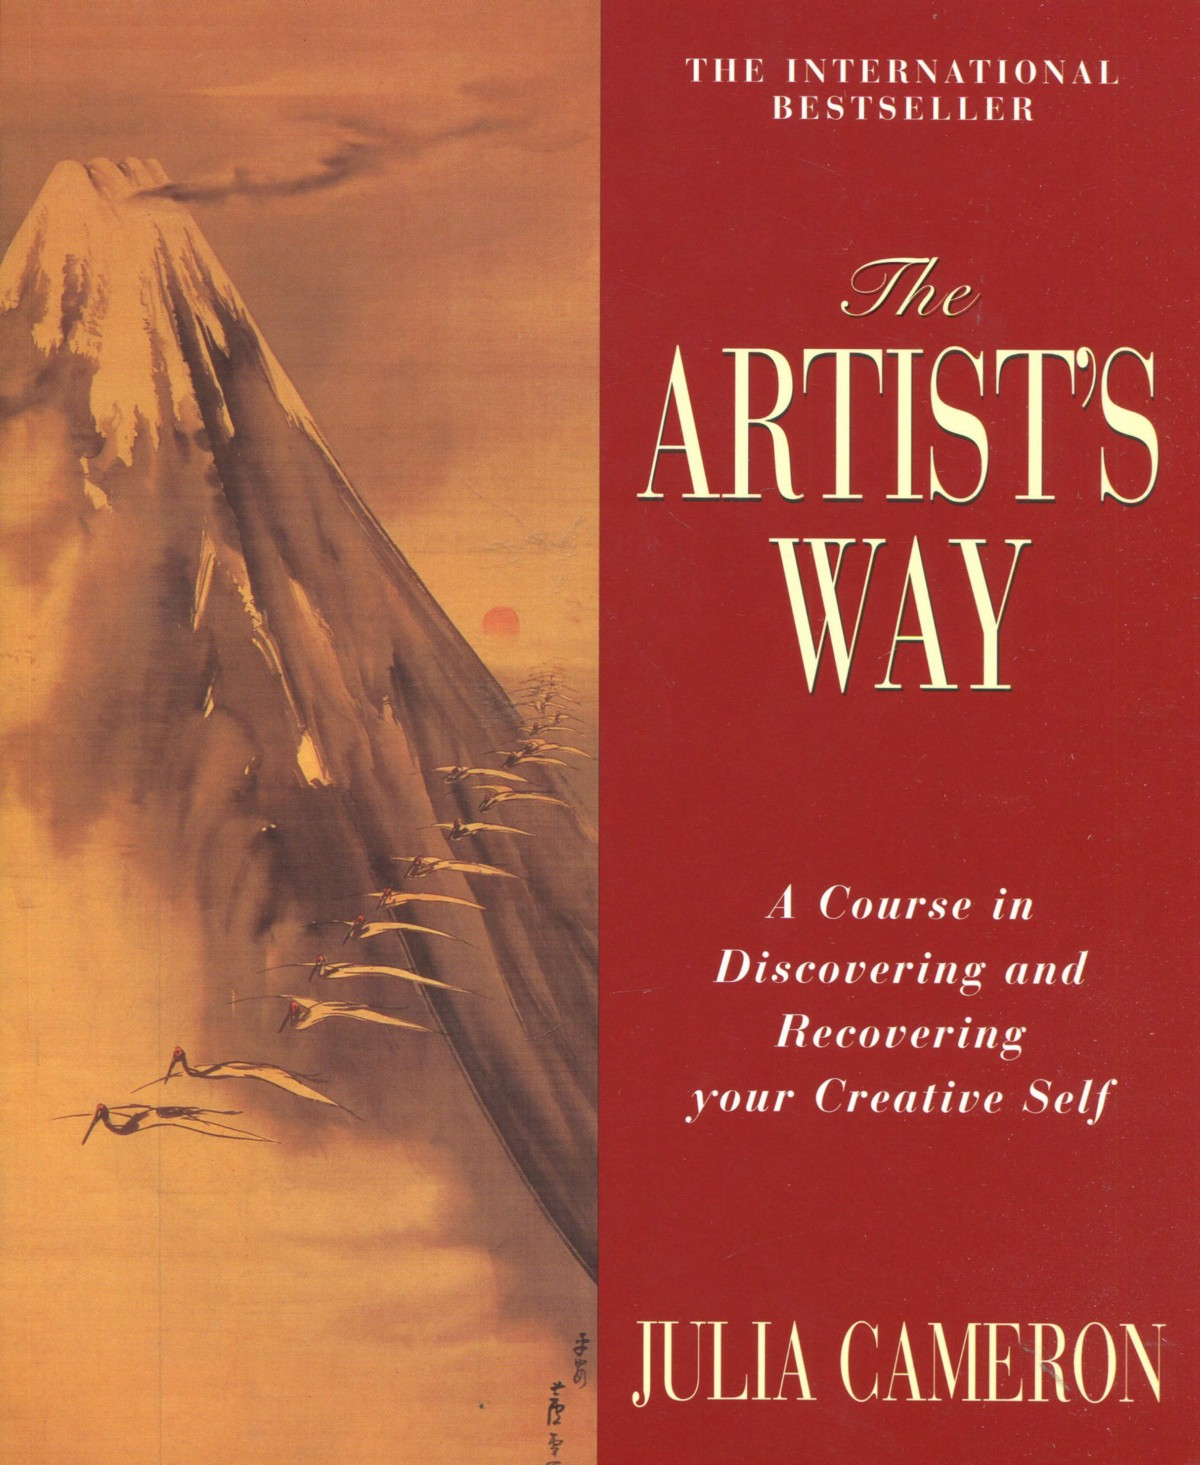 The Artist's Way, by Julia Cameron, is a 12 week do-it-yourself creativity  course that I started in Sep 16 and finished in Dec 16.